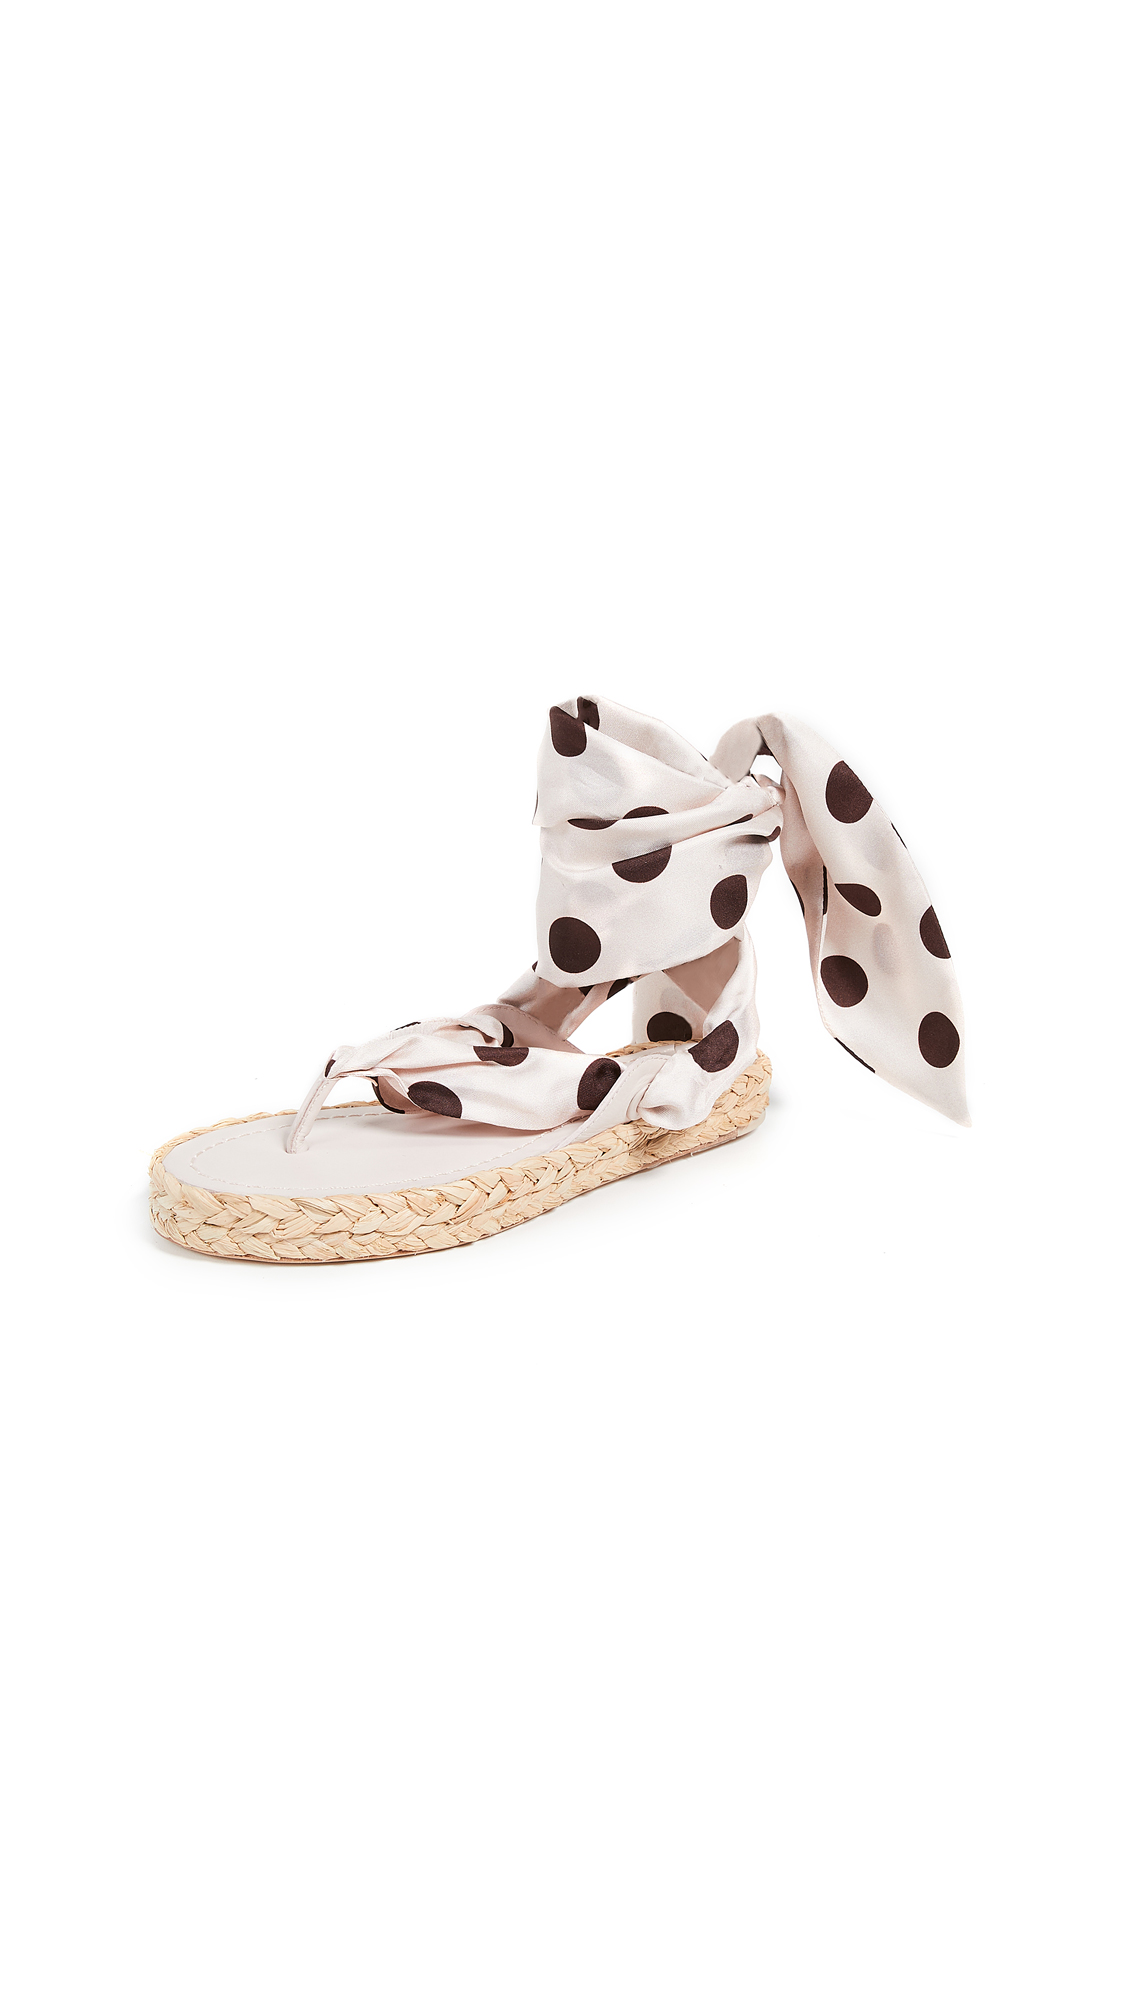 Zimmermann Scarf Tie Espadrille - Nude/Cocoa Dot